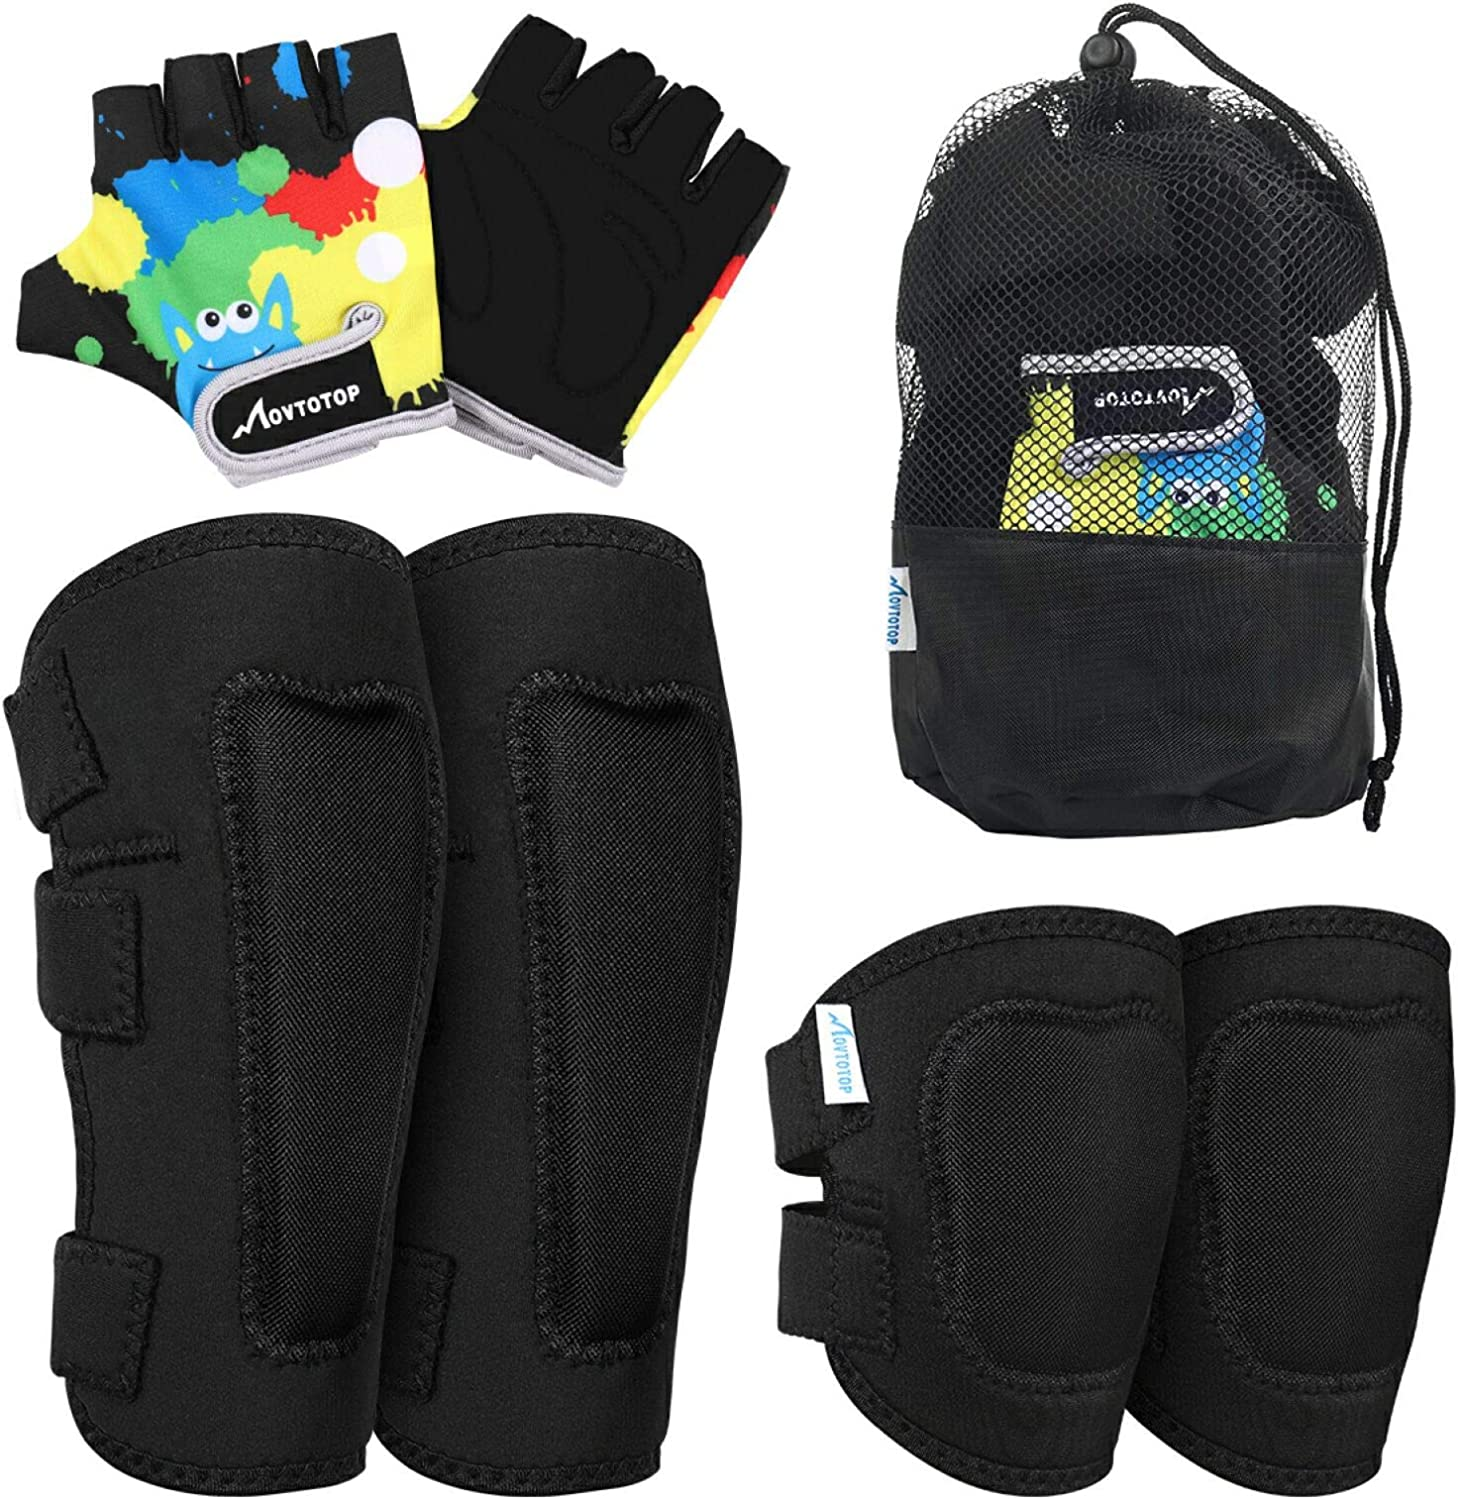 Toddler Sports Protective Gear with Mesh Bag for Kids Skateboard Rollerblading Bike Scoote MOVTOTOP Knee Pads for Kids Soft Kids Knee and Elbow Pads with Gloves Set-Reinforced Stitching Around